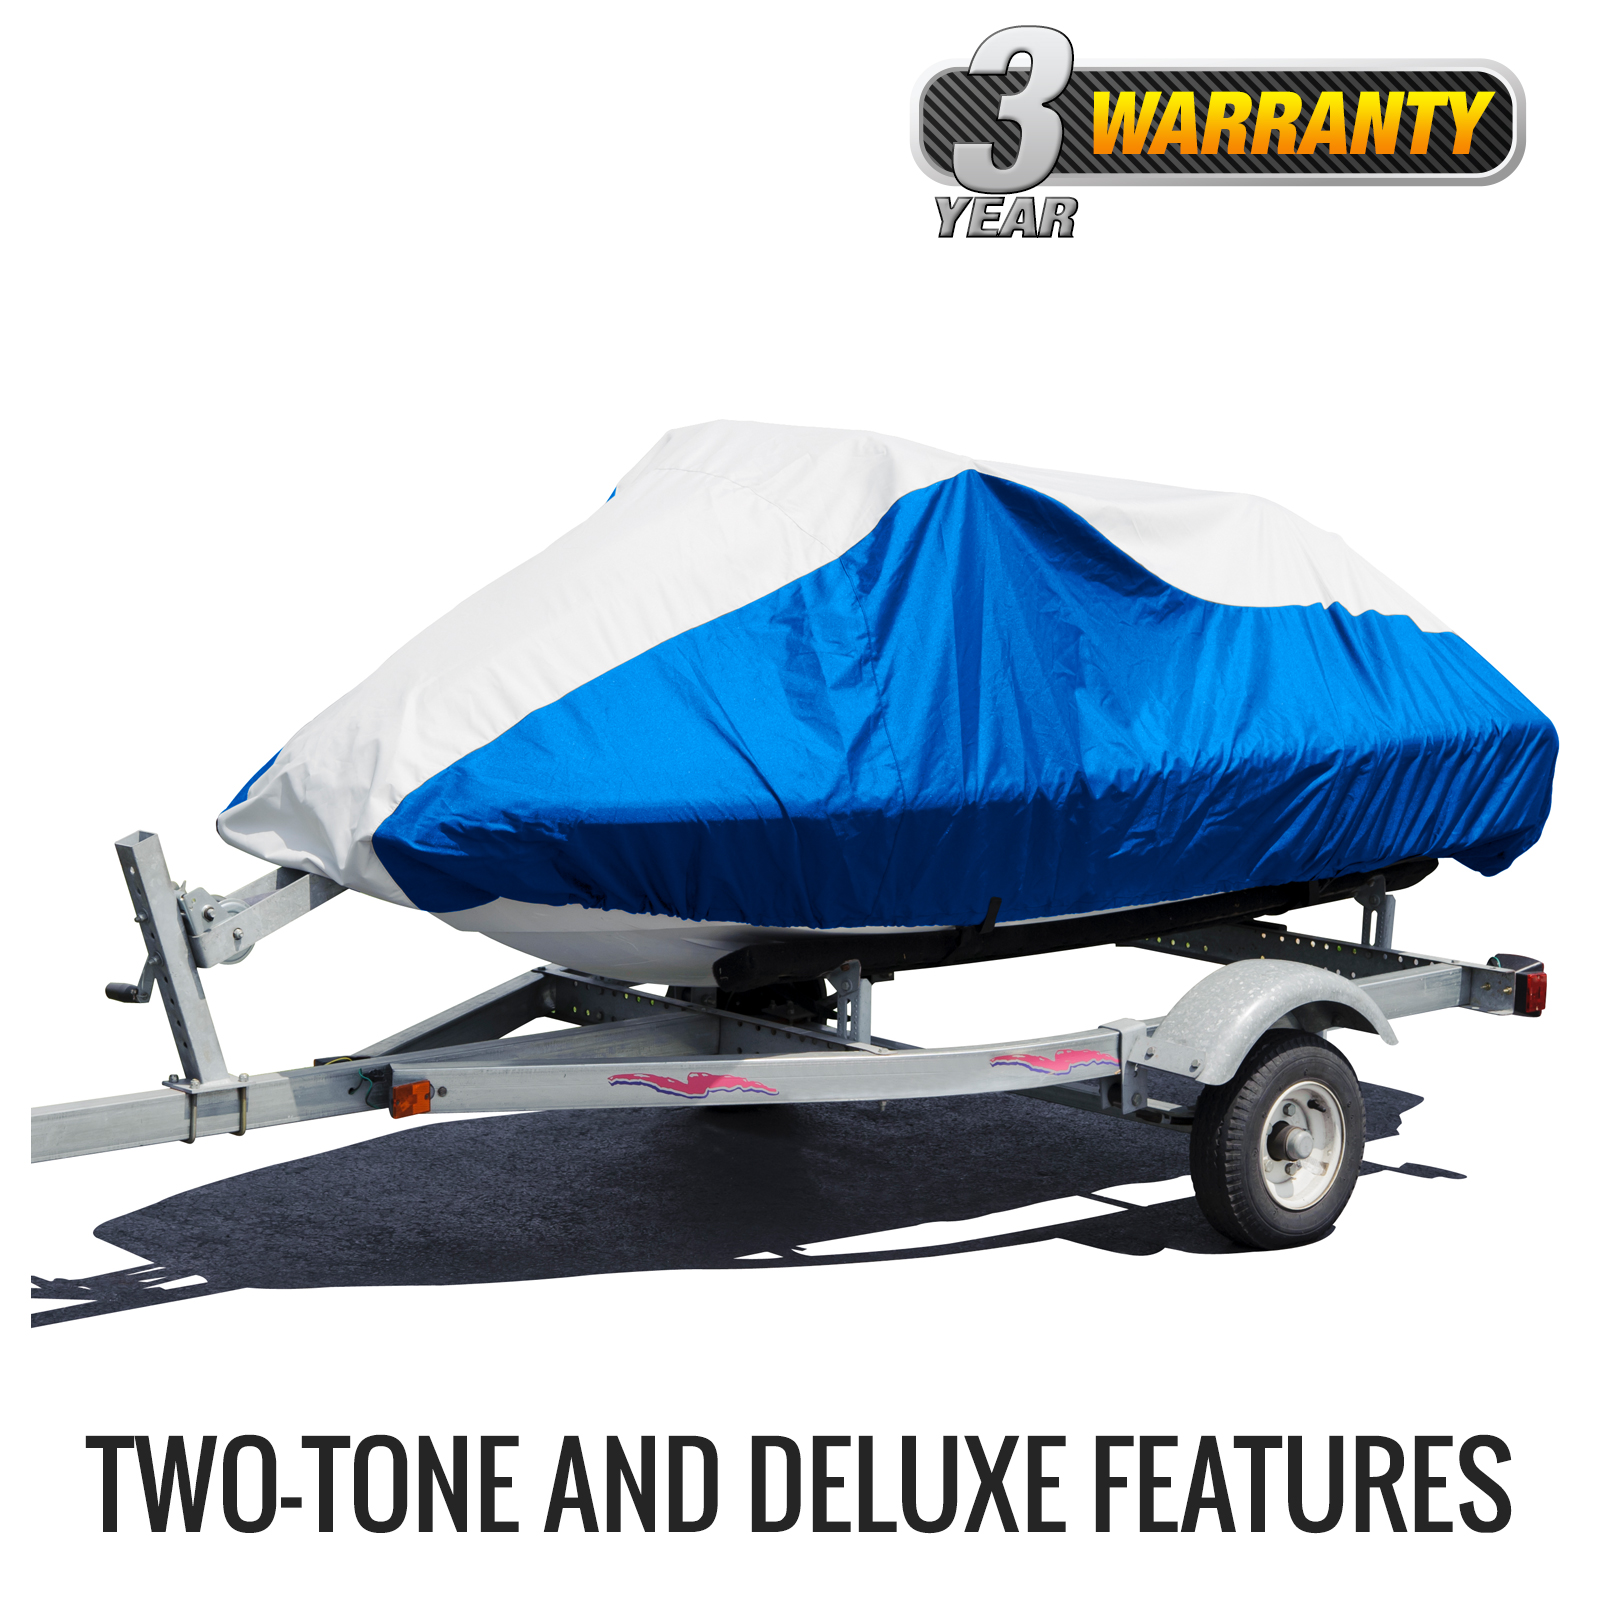 "Budge Deluxe 4 Stroke Jet Ski Cover, Size PW-4: 121"" to 135"" 4-Stroke by Budge Industries"